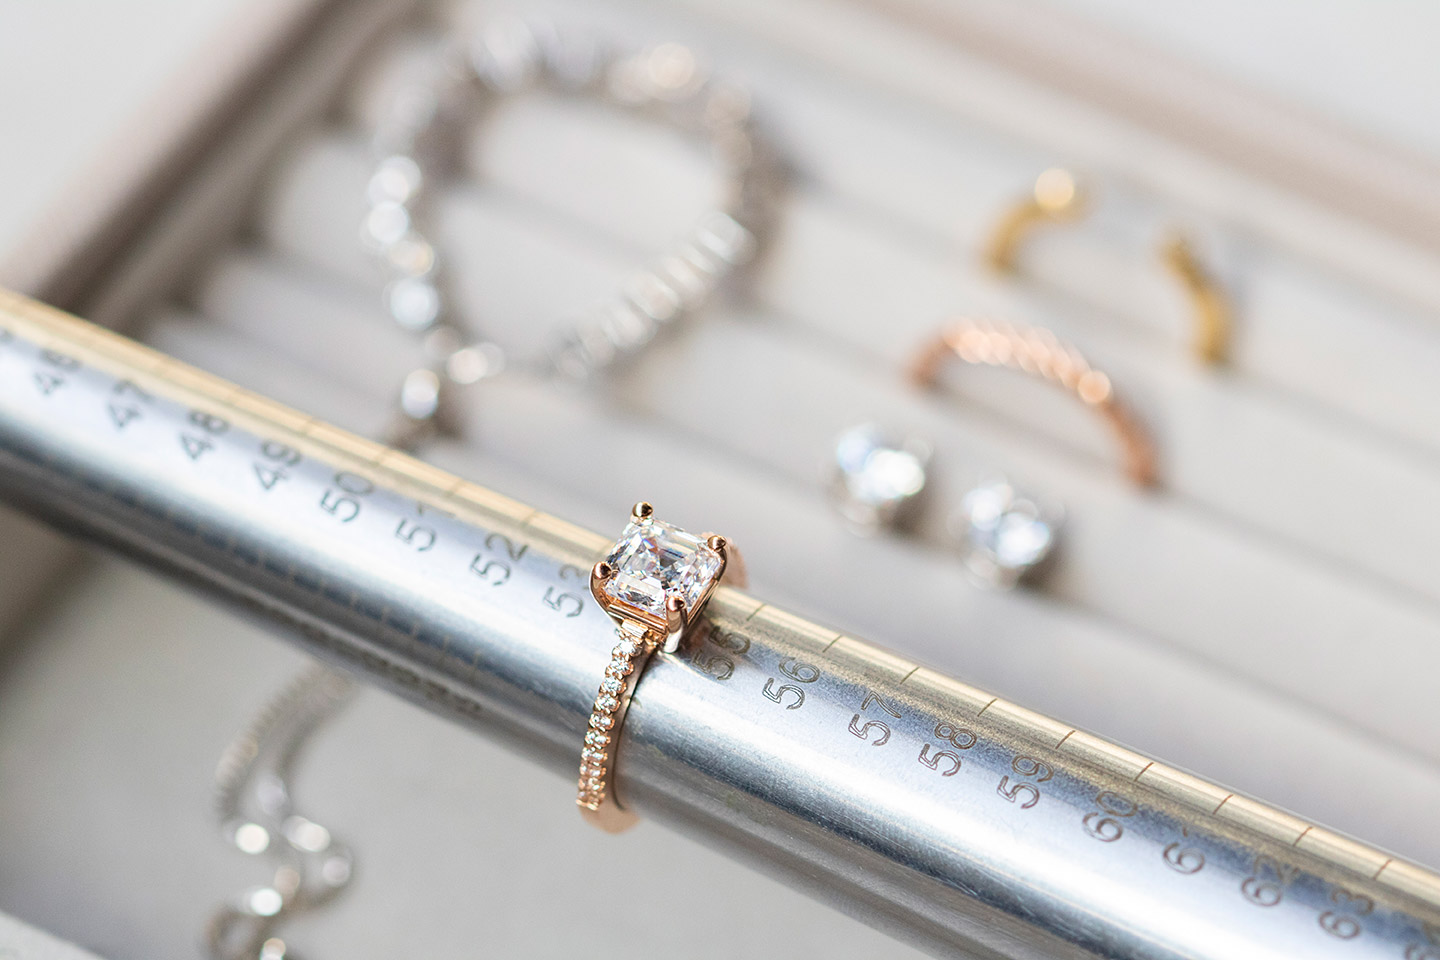 A Diamond Nexus engagement ring being sized on a ring mandrel.